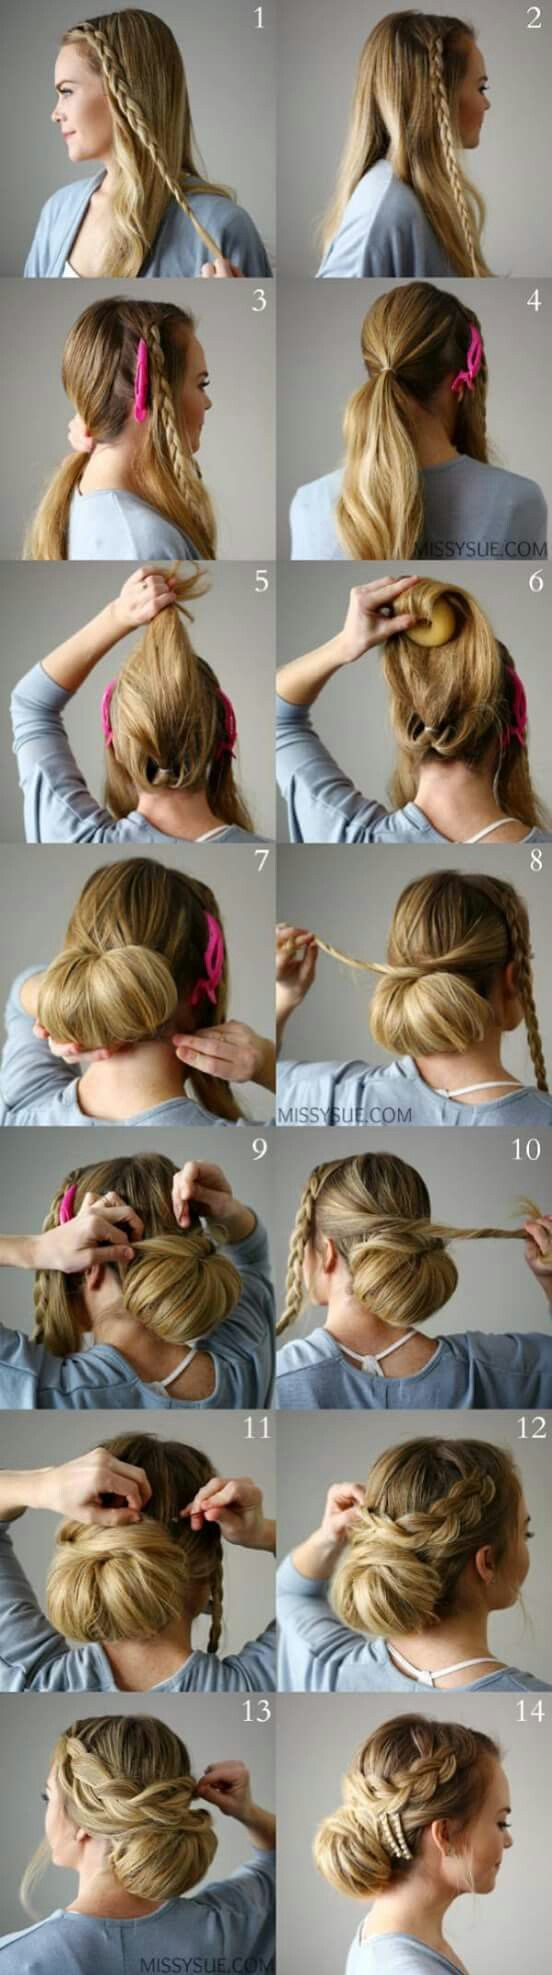 Awe inspiring pinterest the world39s catalog of ideas updo hairstyles - Braid Embellished Smooth Bun So Pretty Buns